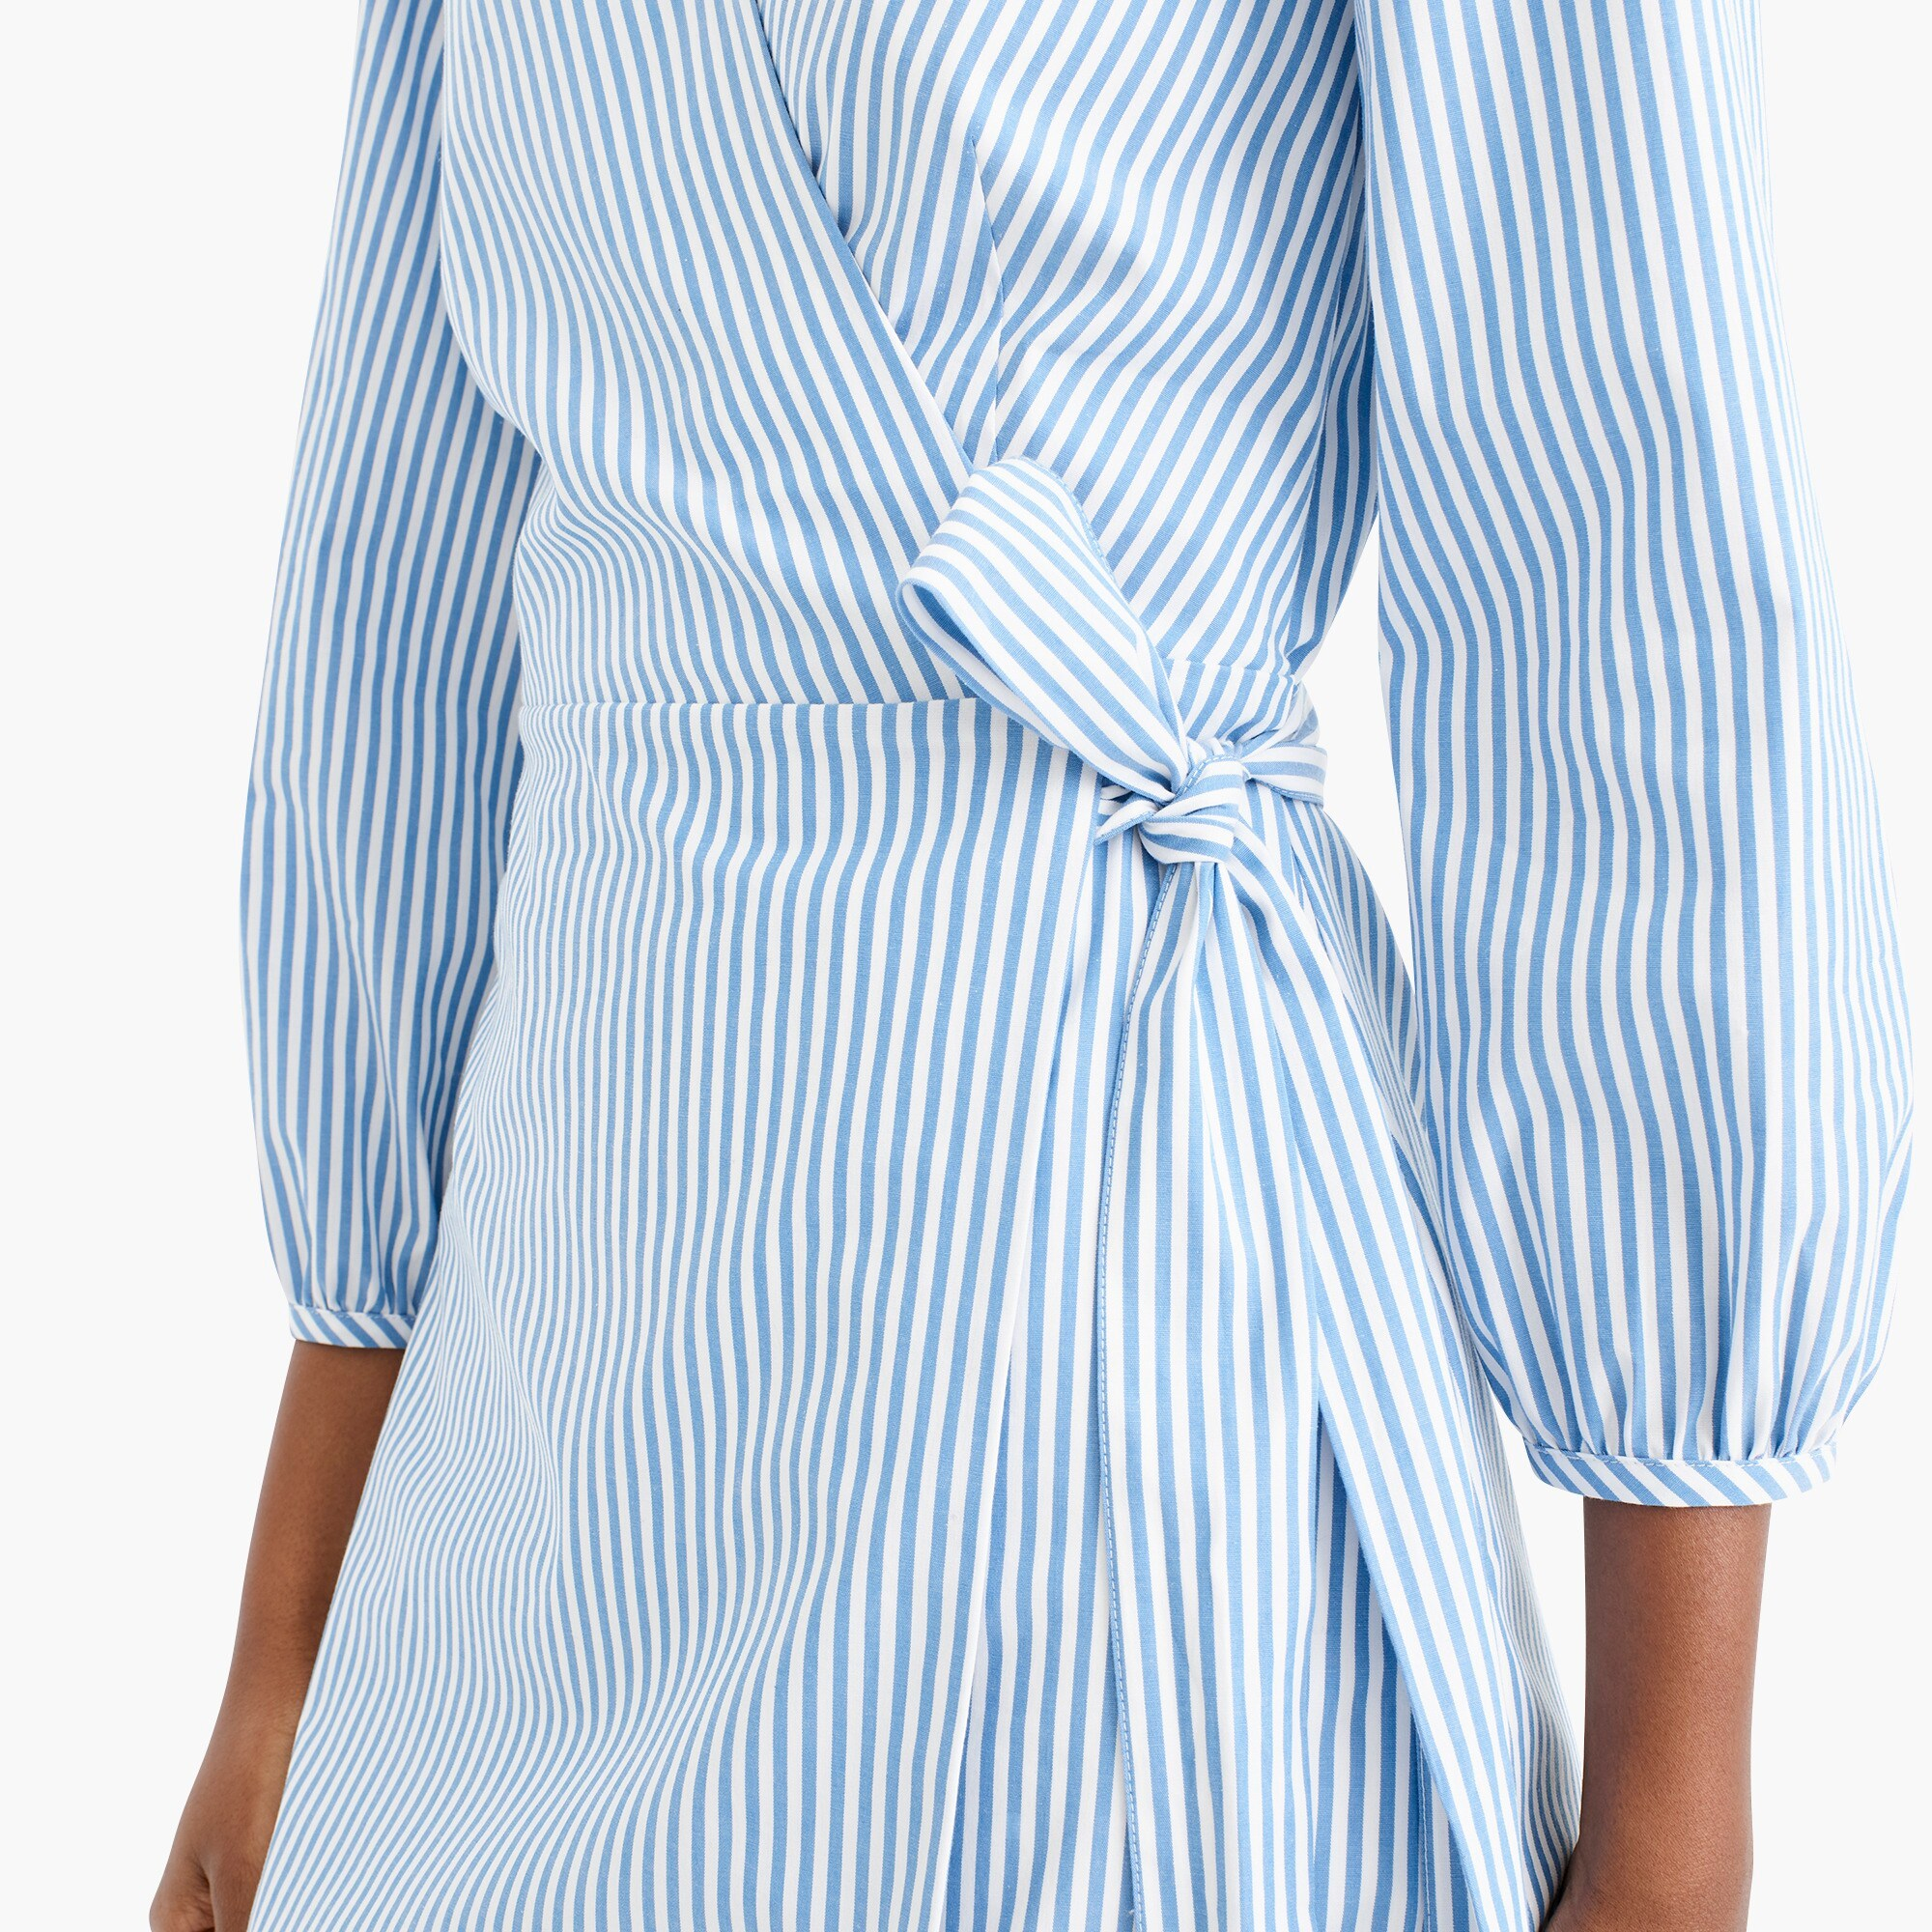 Image 2 for Wrap dress in striped cotton poplin